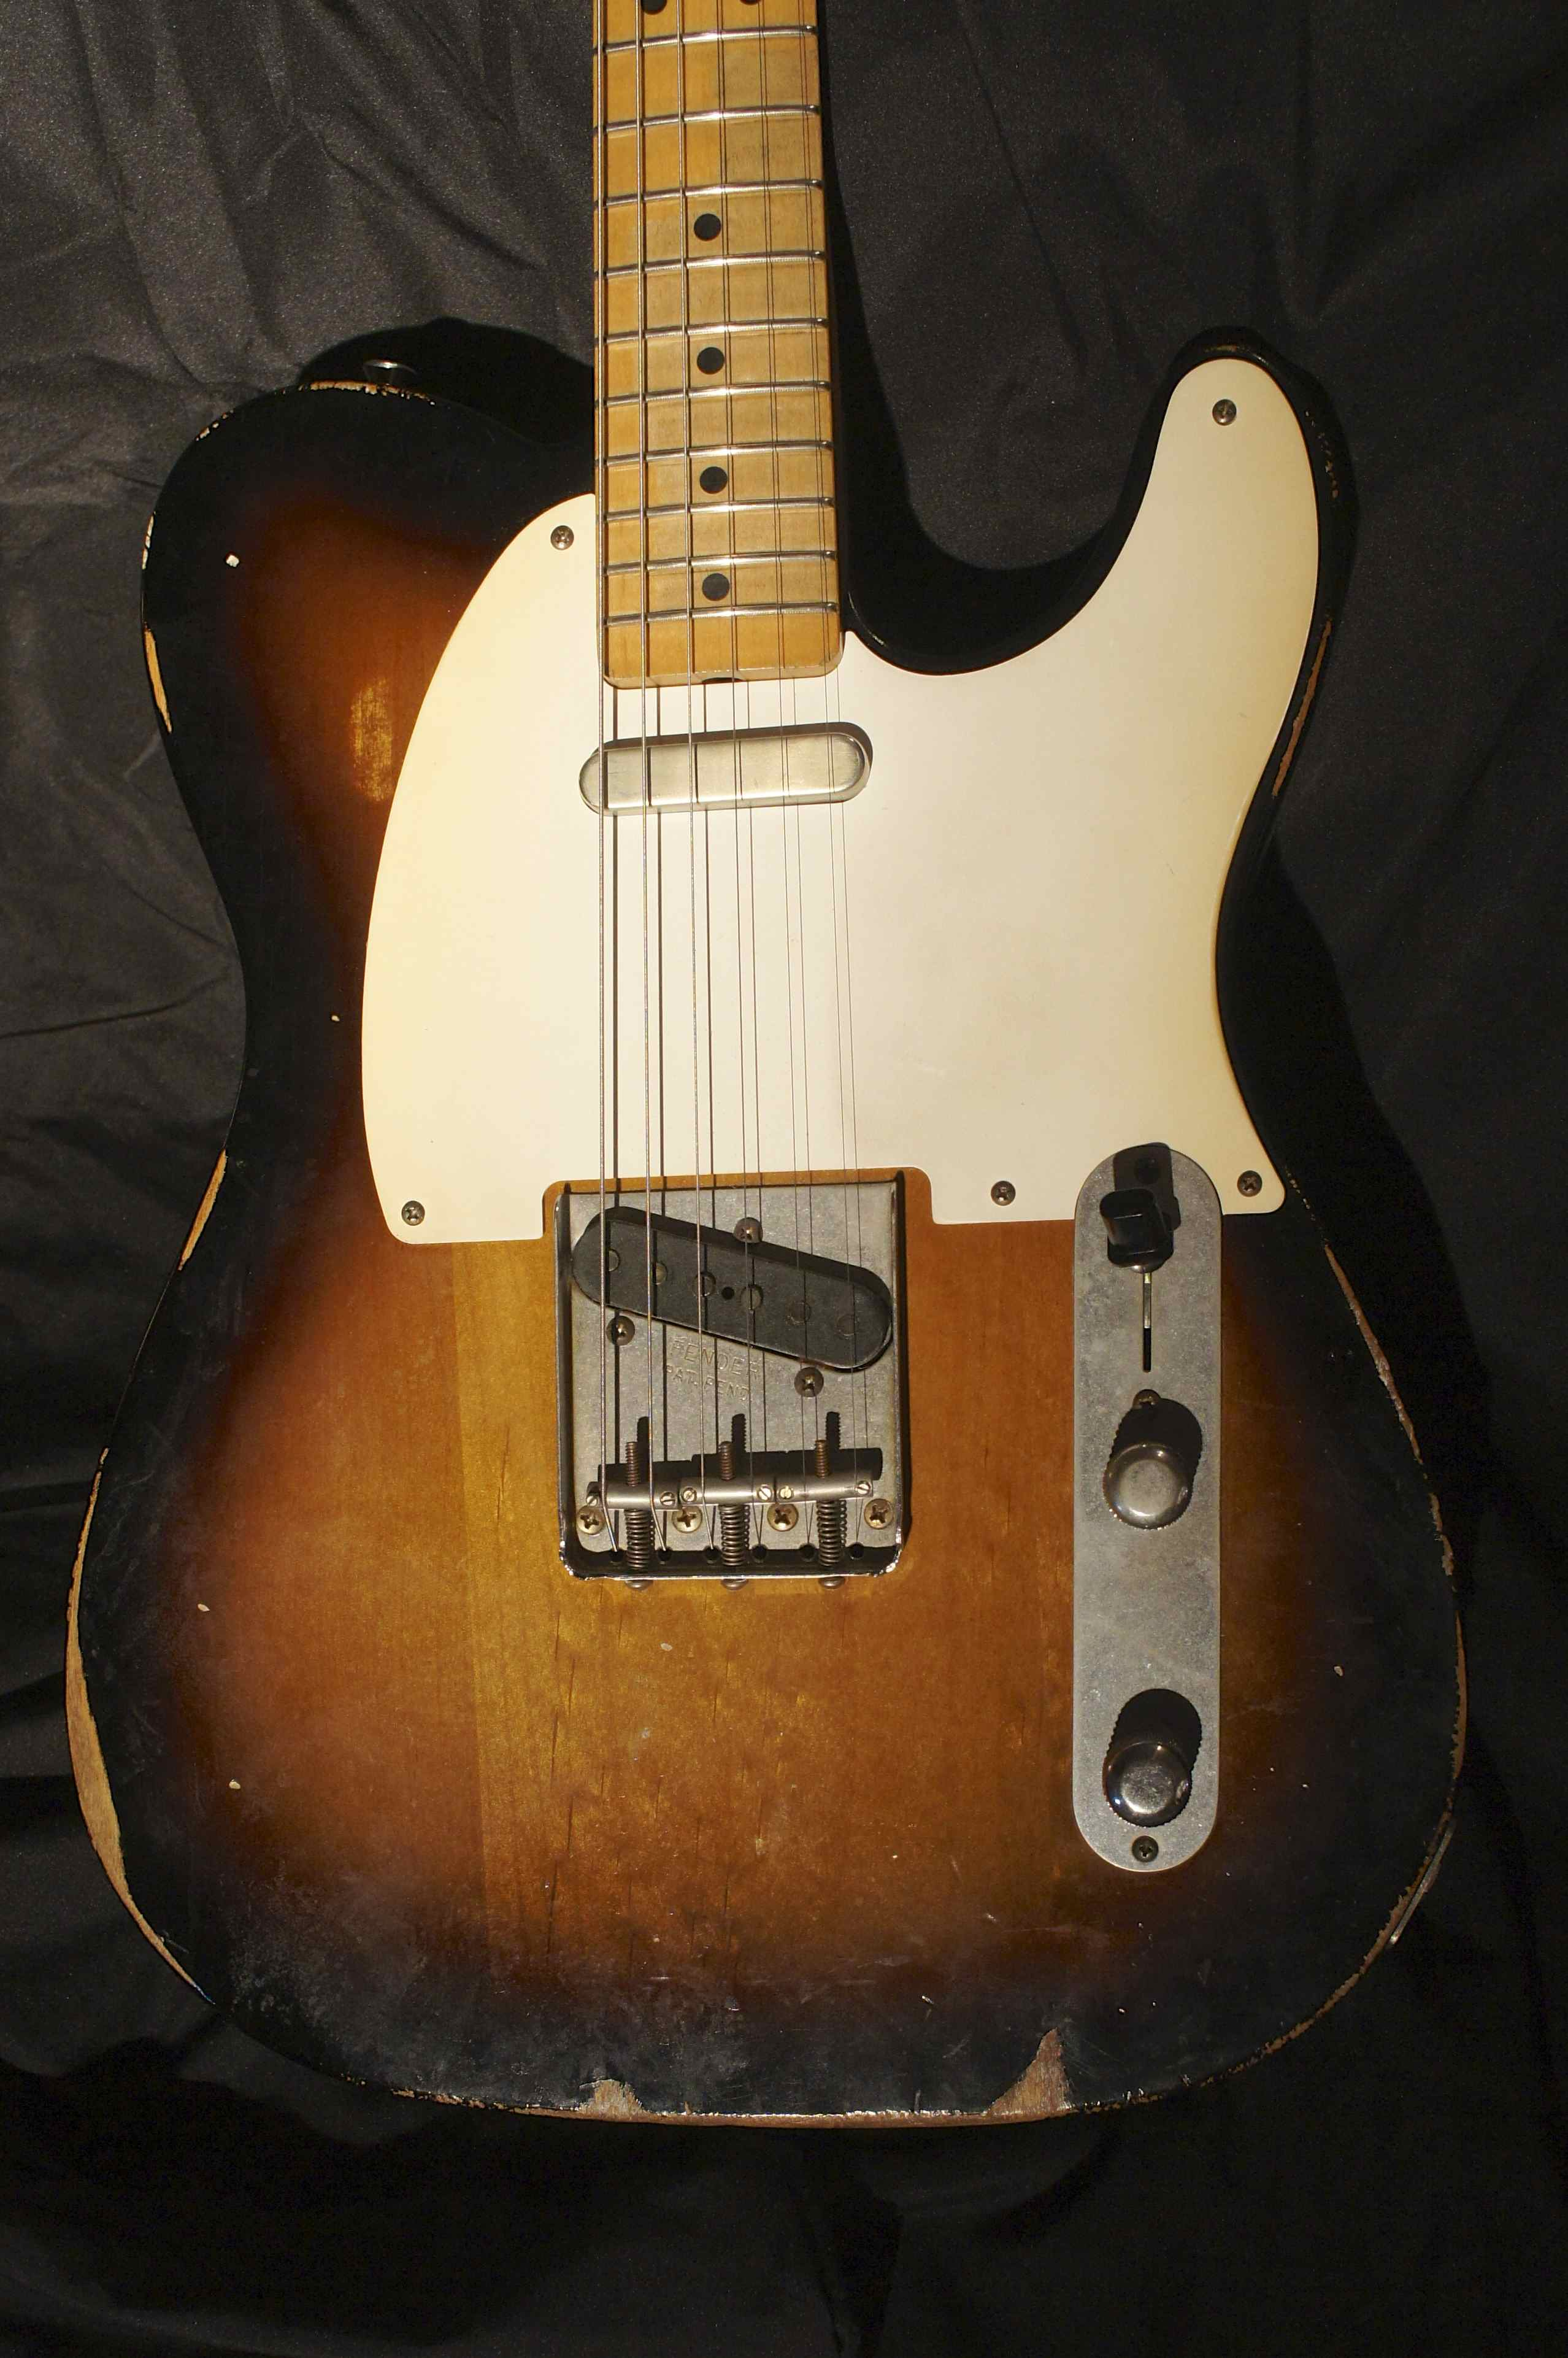 fender road worn 39 50s telecaster with treatment by andy brauer 2009 jeff kollman tune your. Black Bedroom Furniture Sets. Home Design Ideas